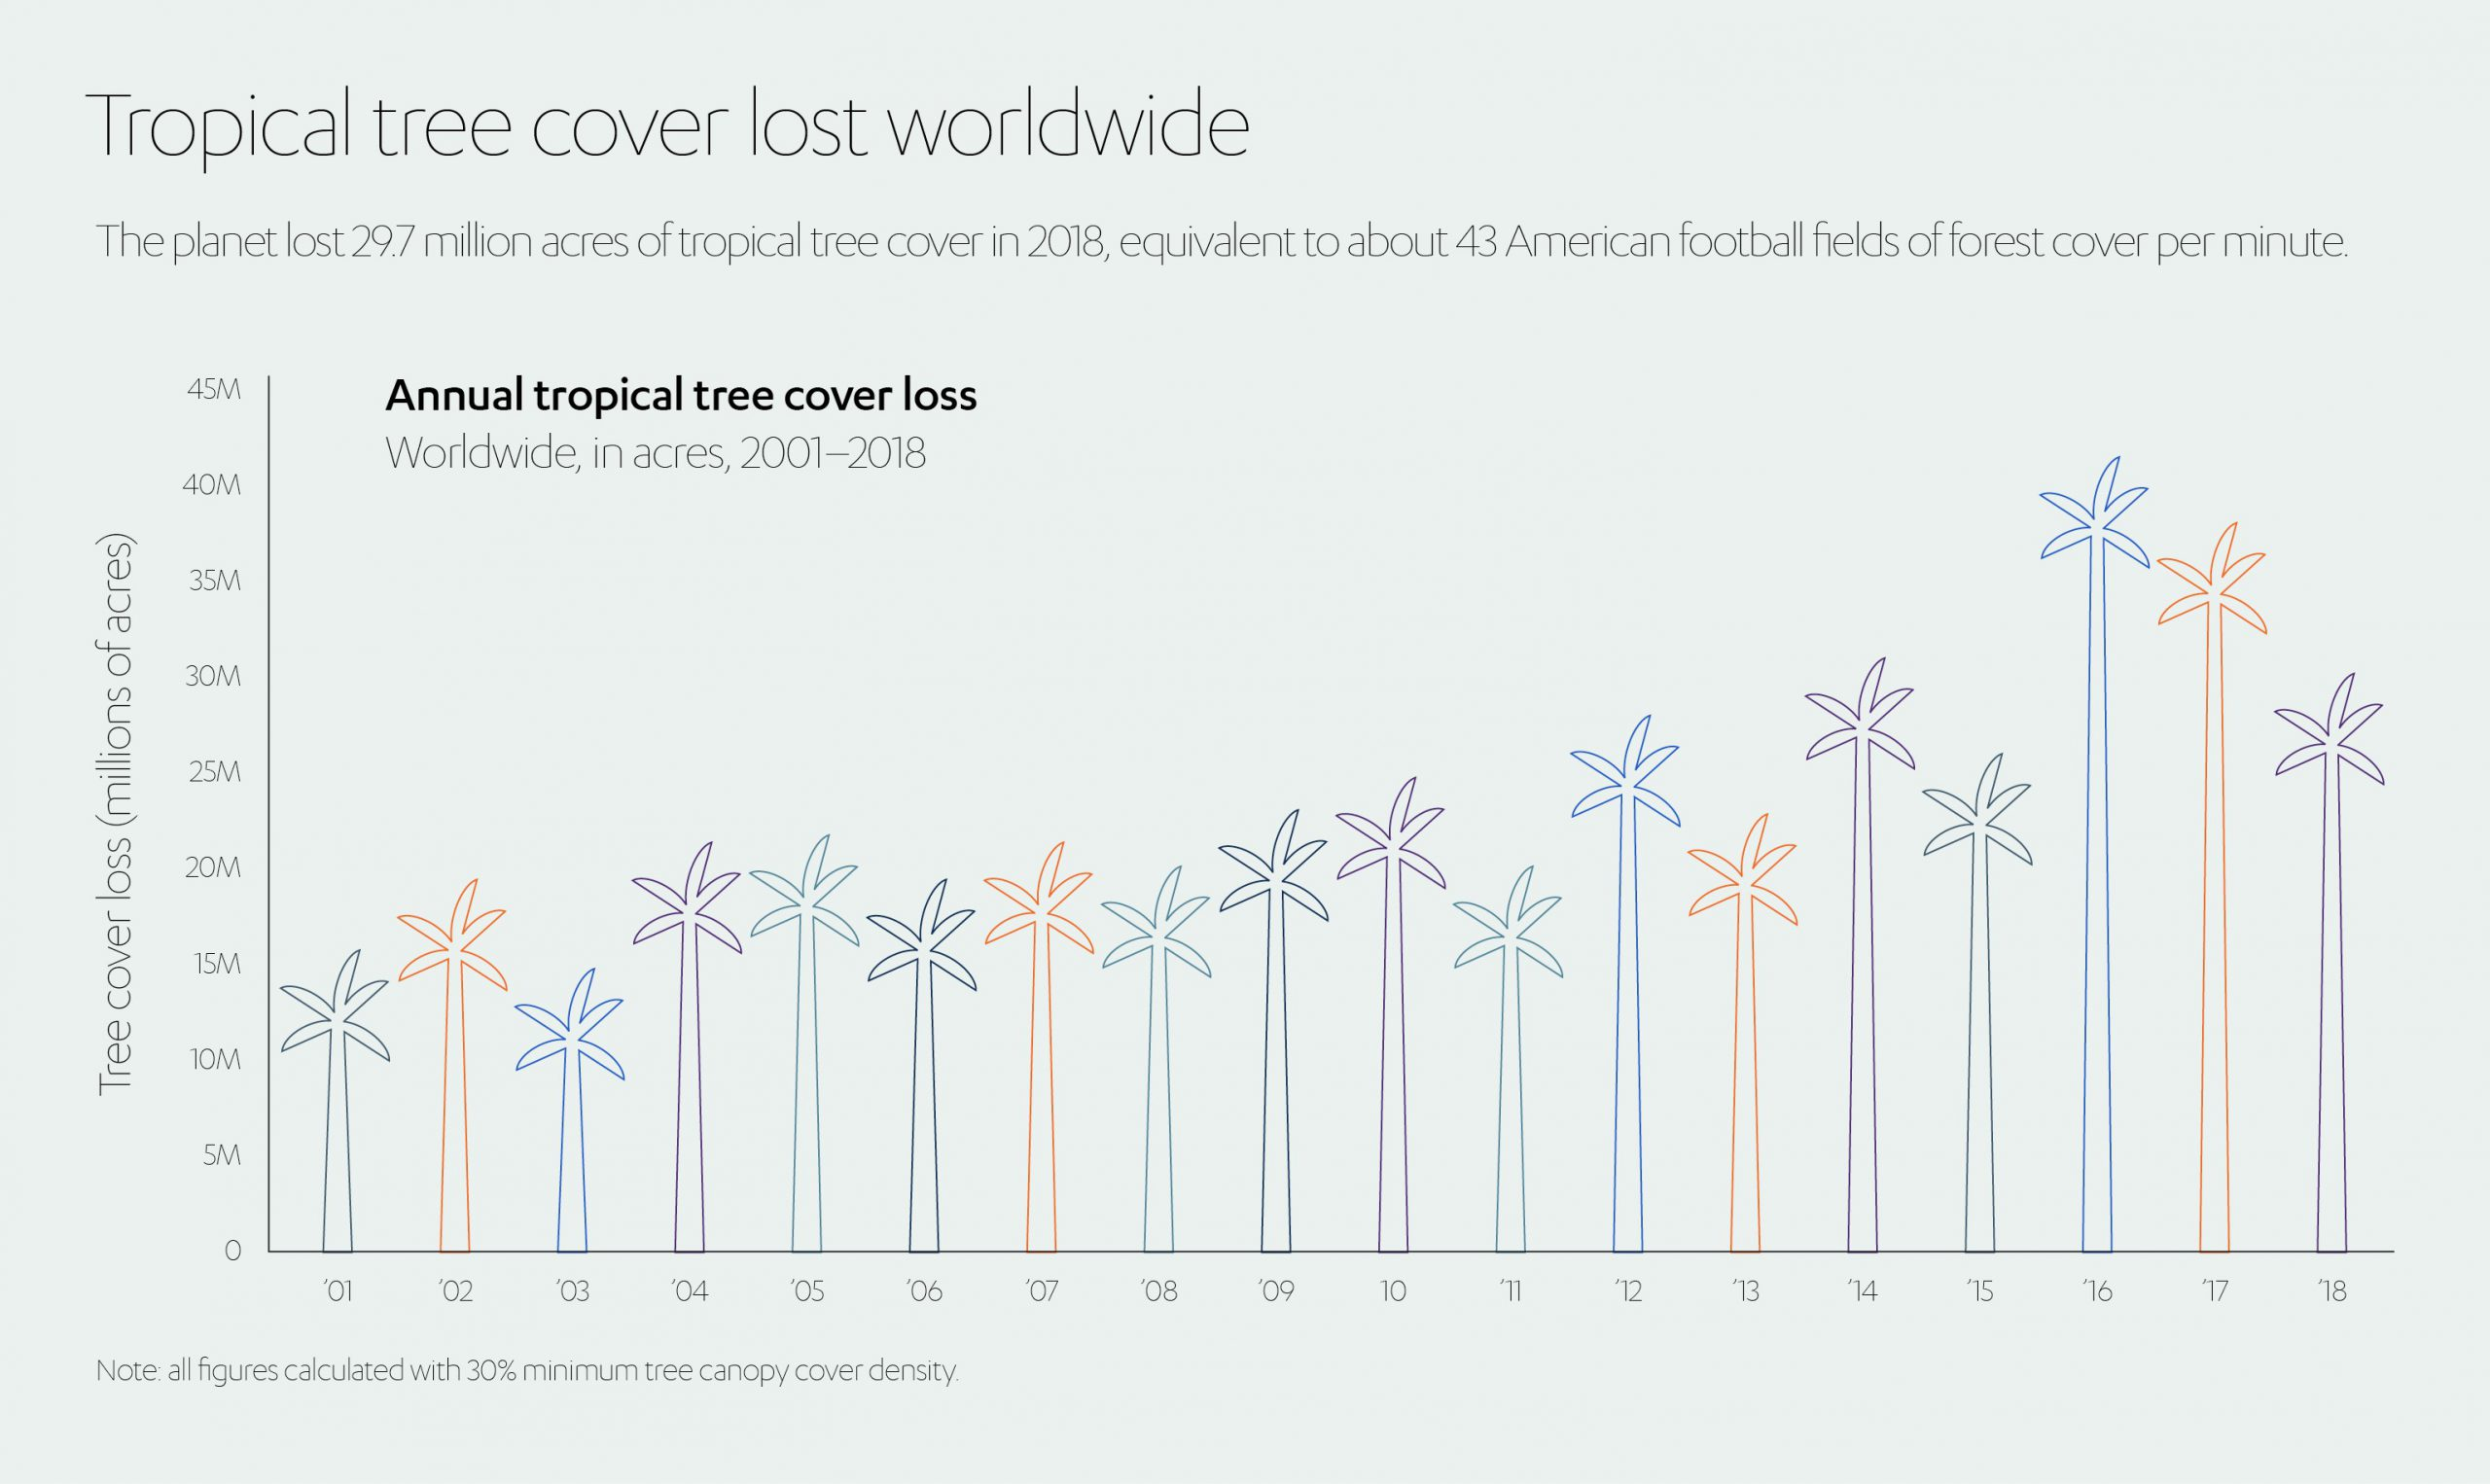 Tropical Tree Cover Lost Worldwide